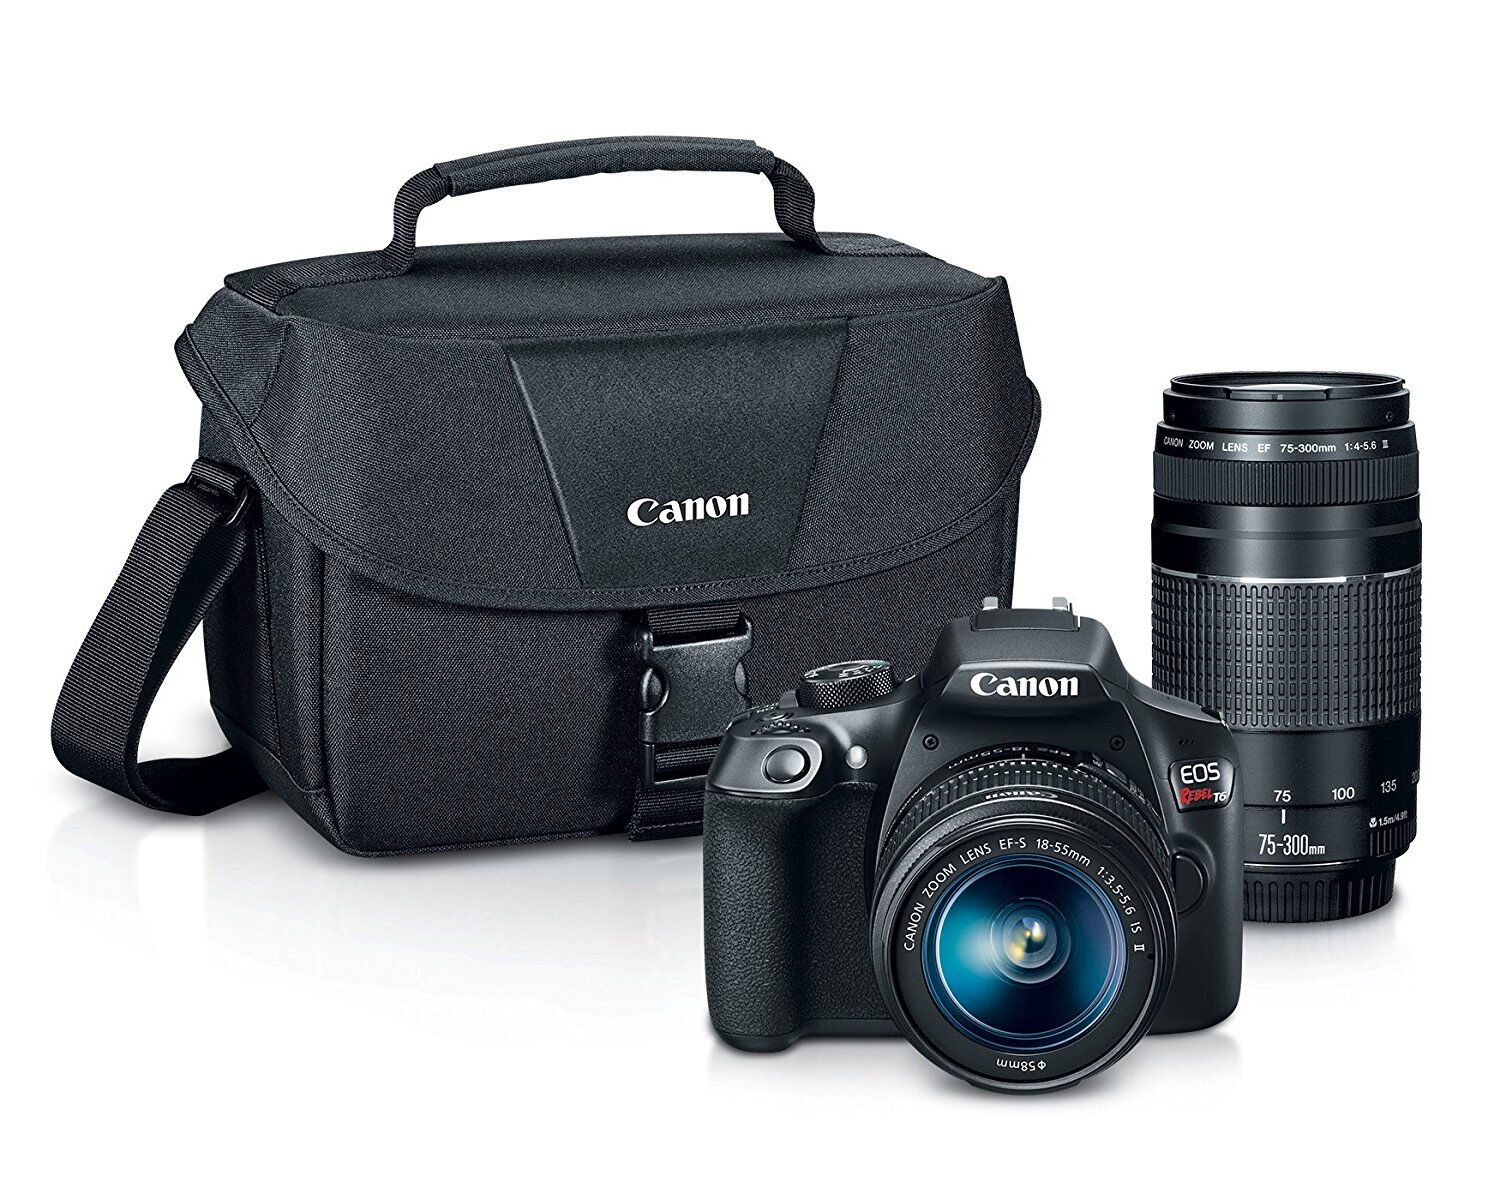 Canon Rebel T6 DSLR Premium Bundle Kit with 18-55mm 75-300mm Lenses & Canon Case